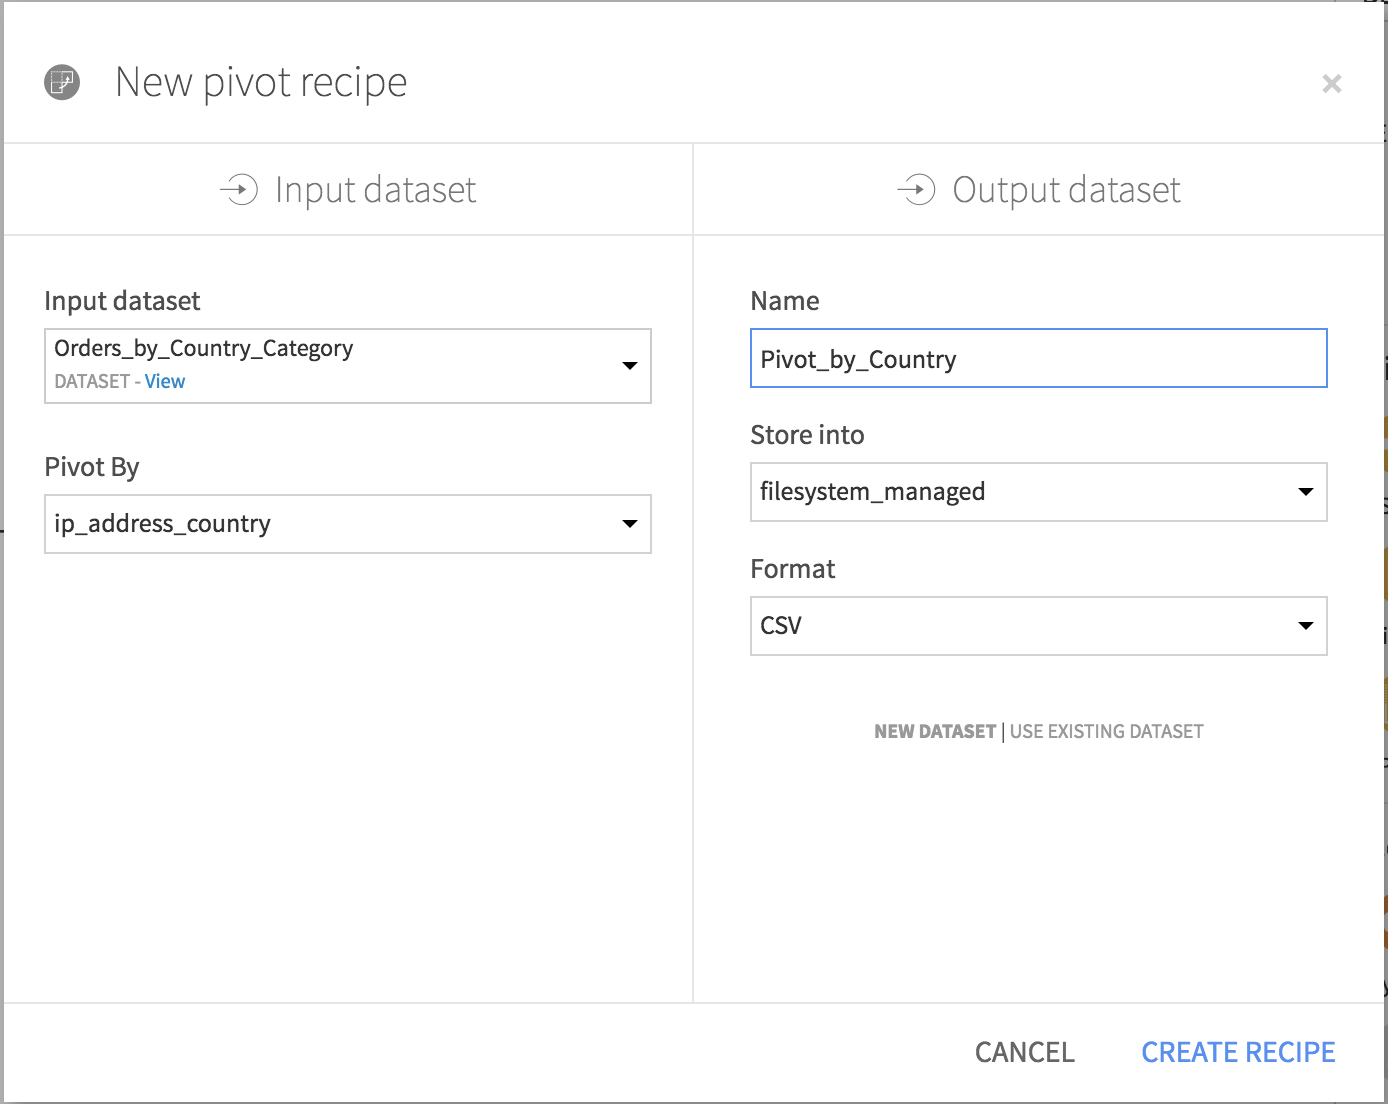 The create Pivot recipe screen, with the settings described in the text.